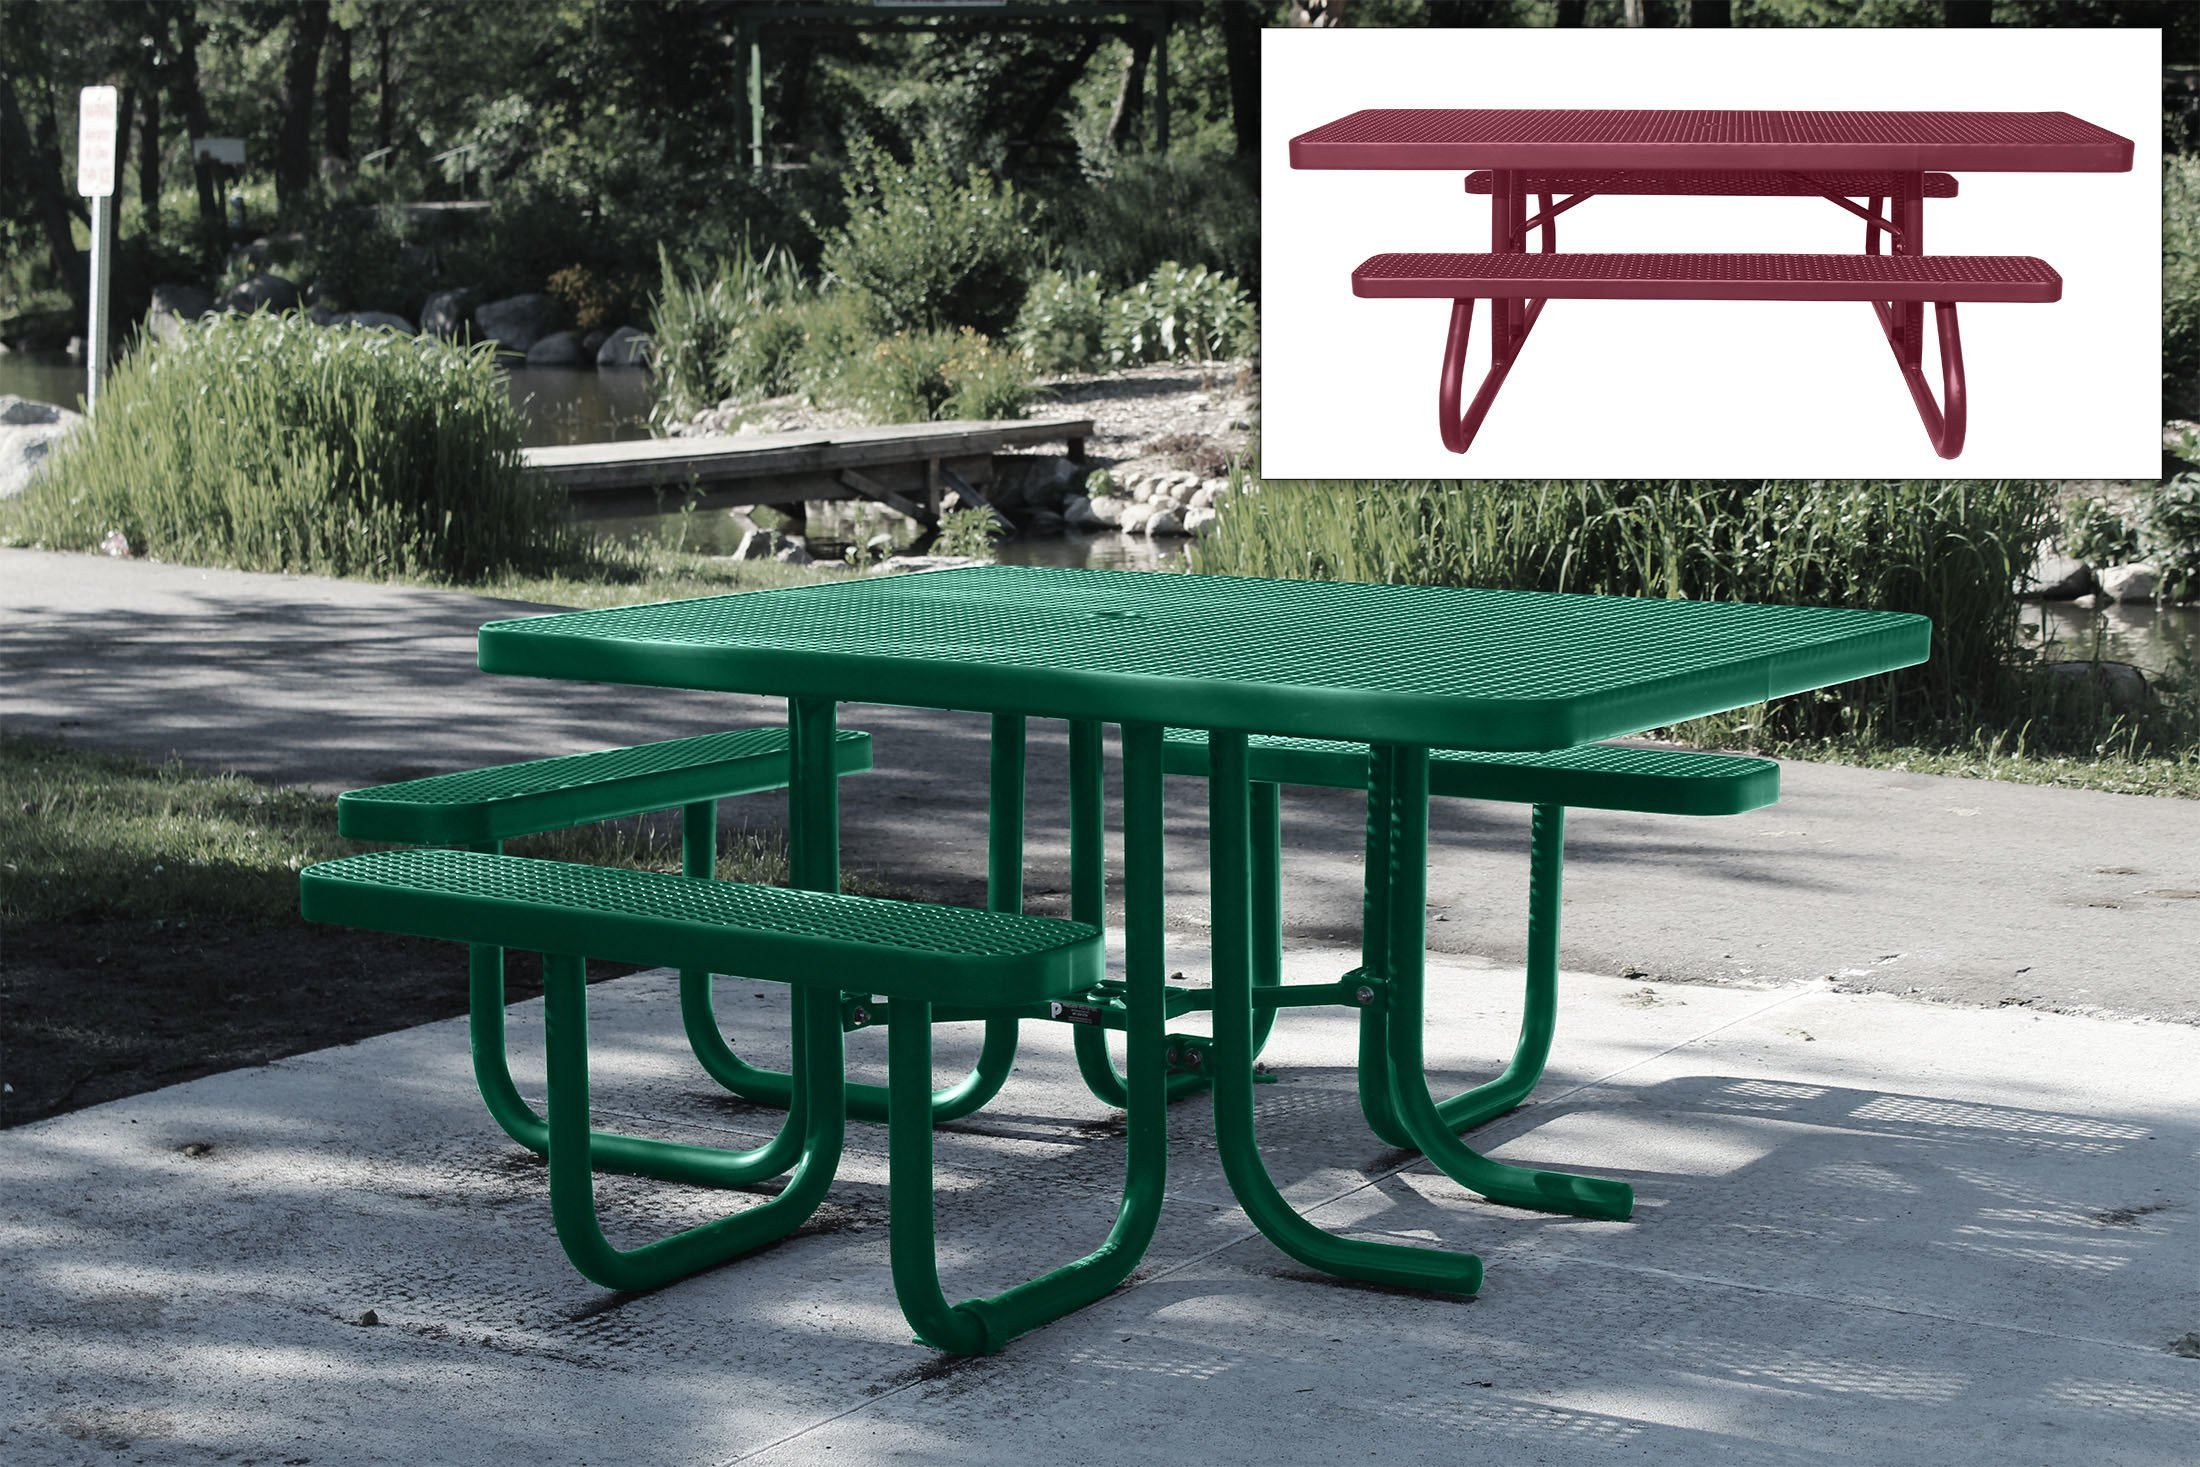 Premier Polysteel offers a 20-year warranty on the picnic tables pictured here.